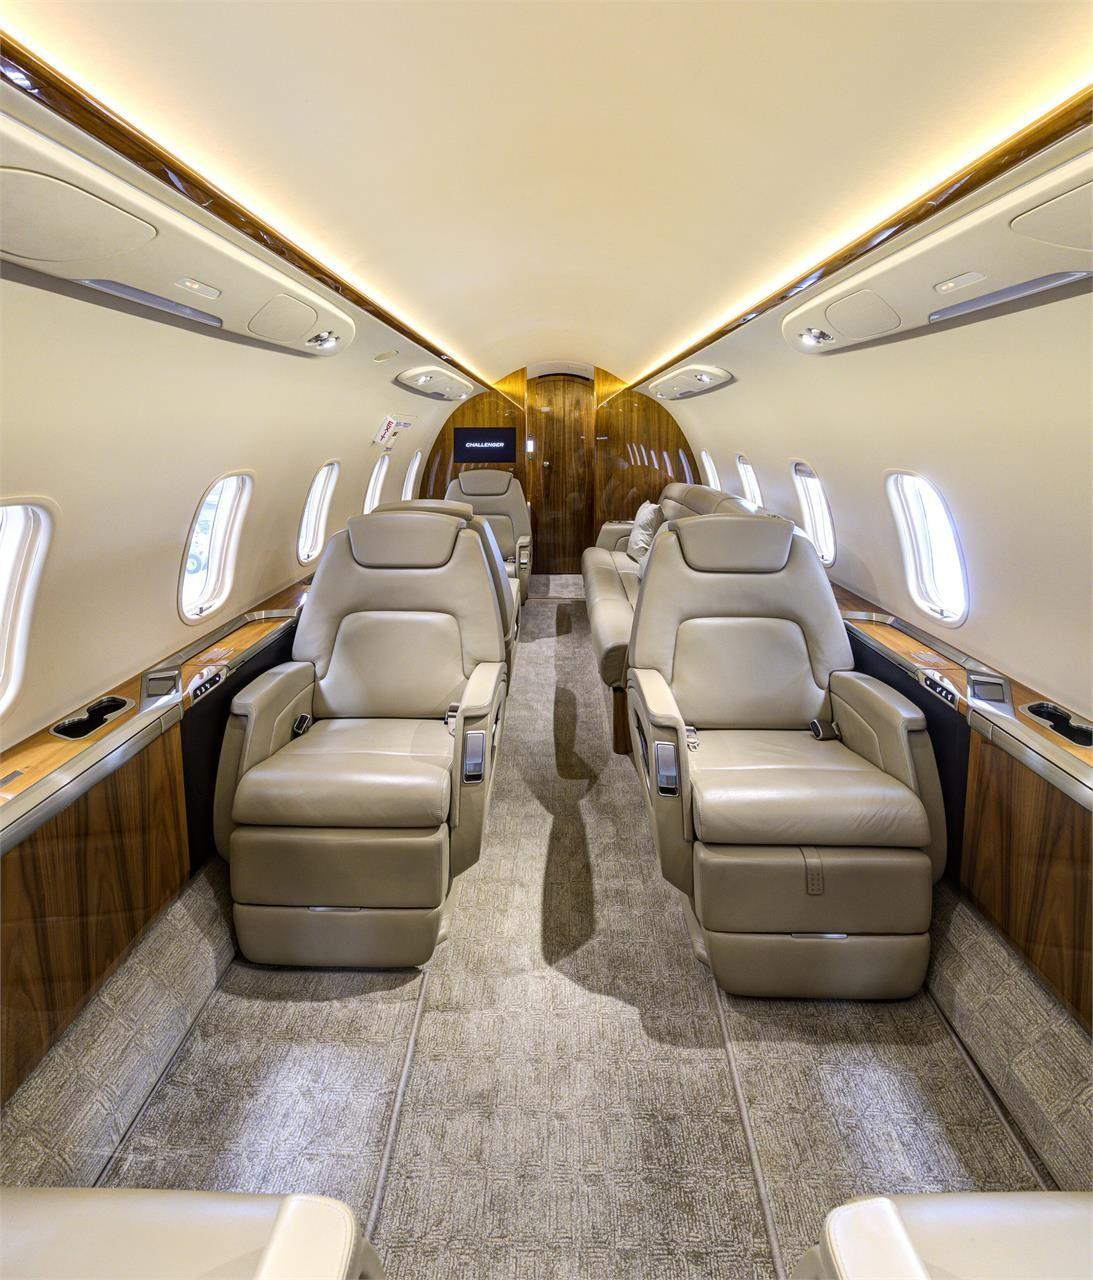 2015 BOMBARDIER/CHALLENGER 350 Photo 2